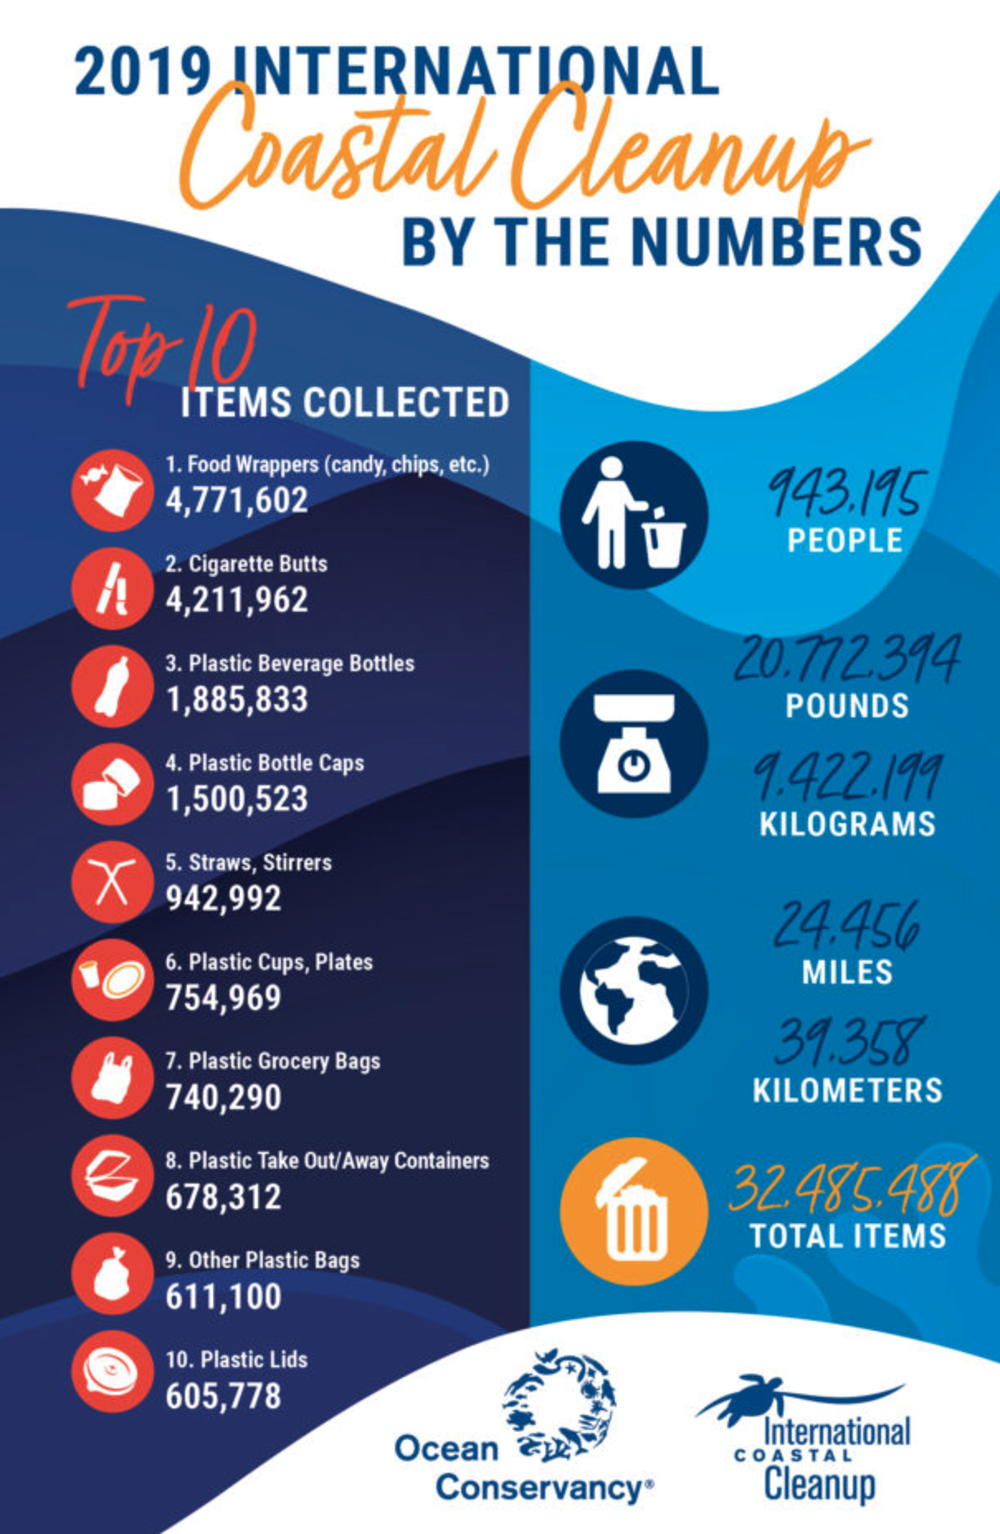 The Ocean Conservancy's 2019 International Coastal Cleanup statistics